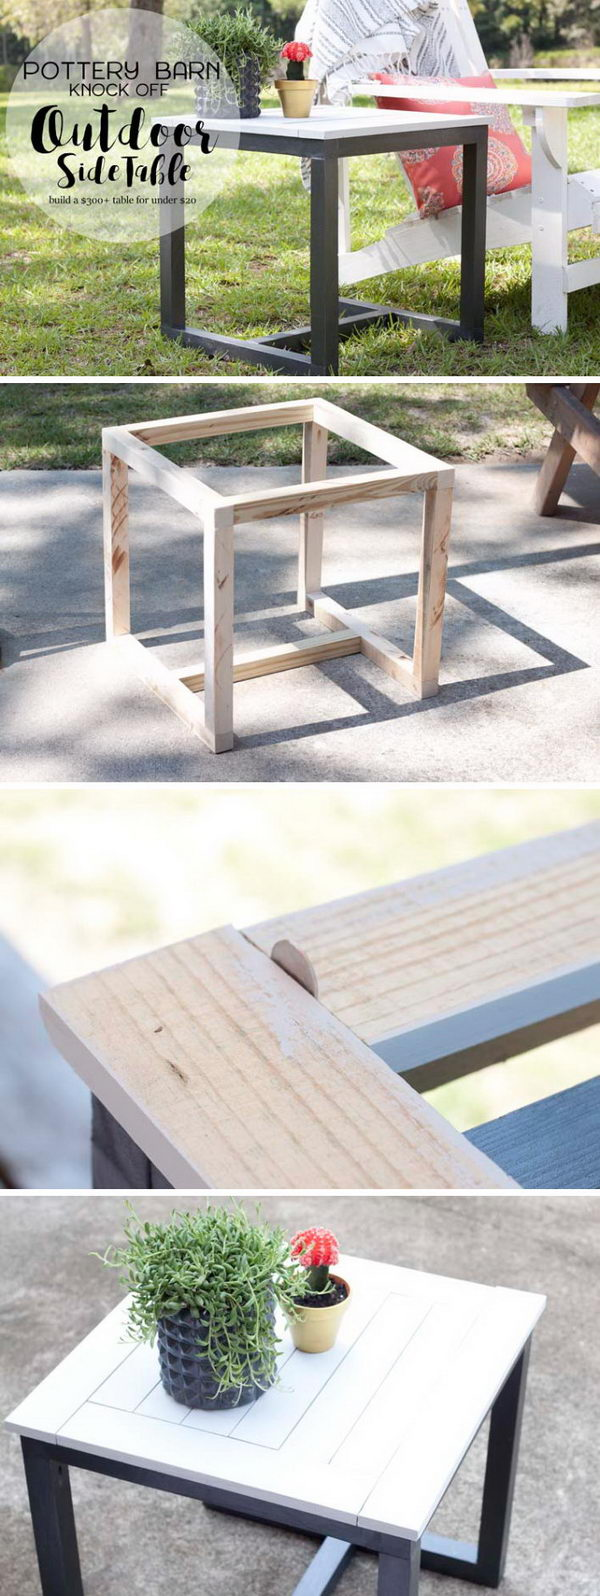 awesome diy side table ideas for outdoors and indoors hative tutorials outdoor pottery barn knockoff honey oak contemporary end tables ikea wood west elm rabbit lamp jcpenney